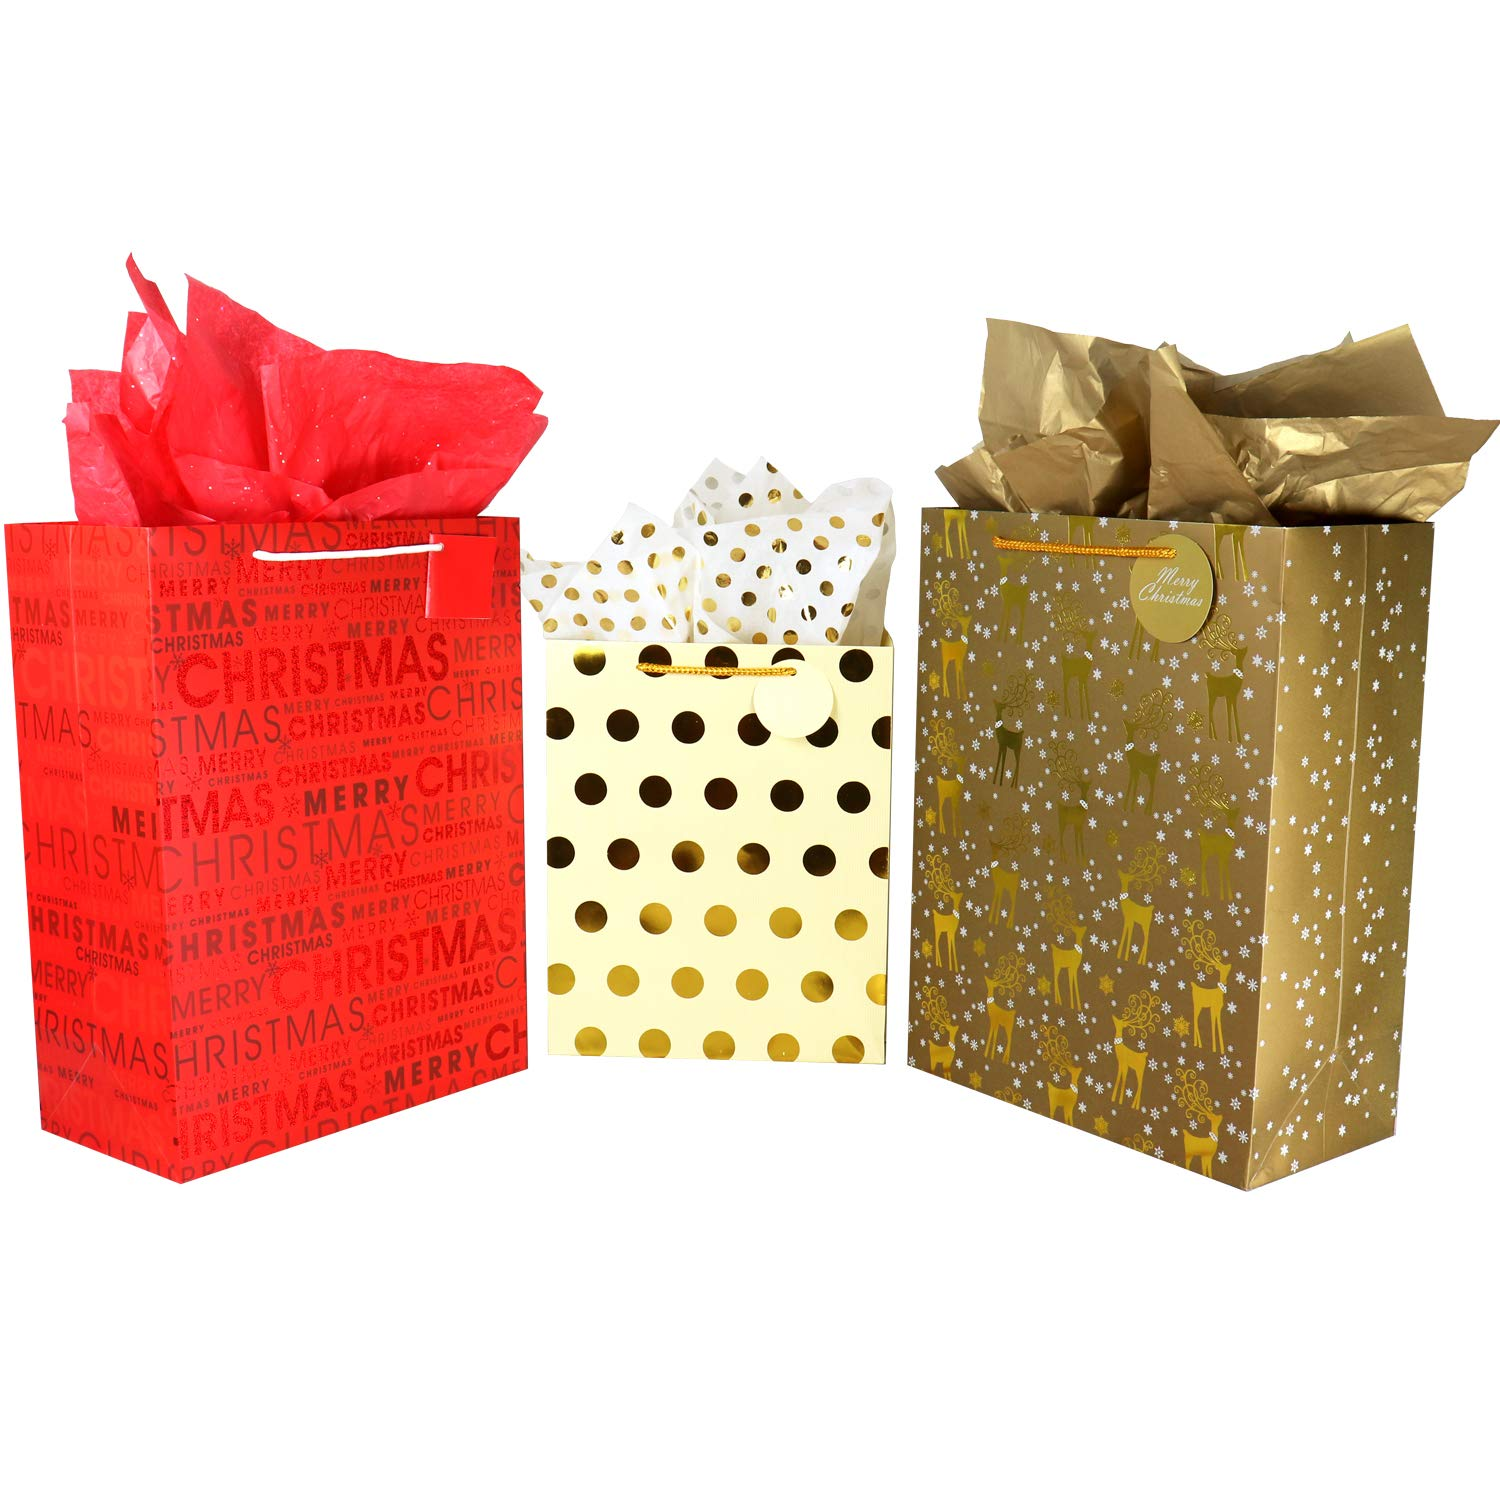 Christmas Bags In Bulk.Where To Buy Christmas Gift Bags In Bulk Madly Indian